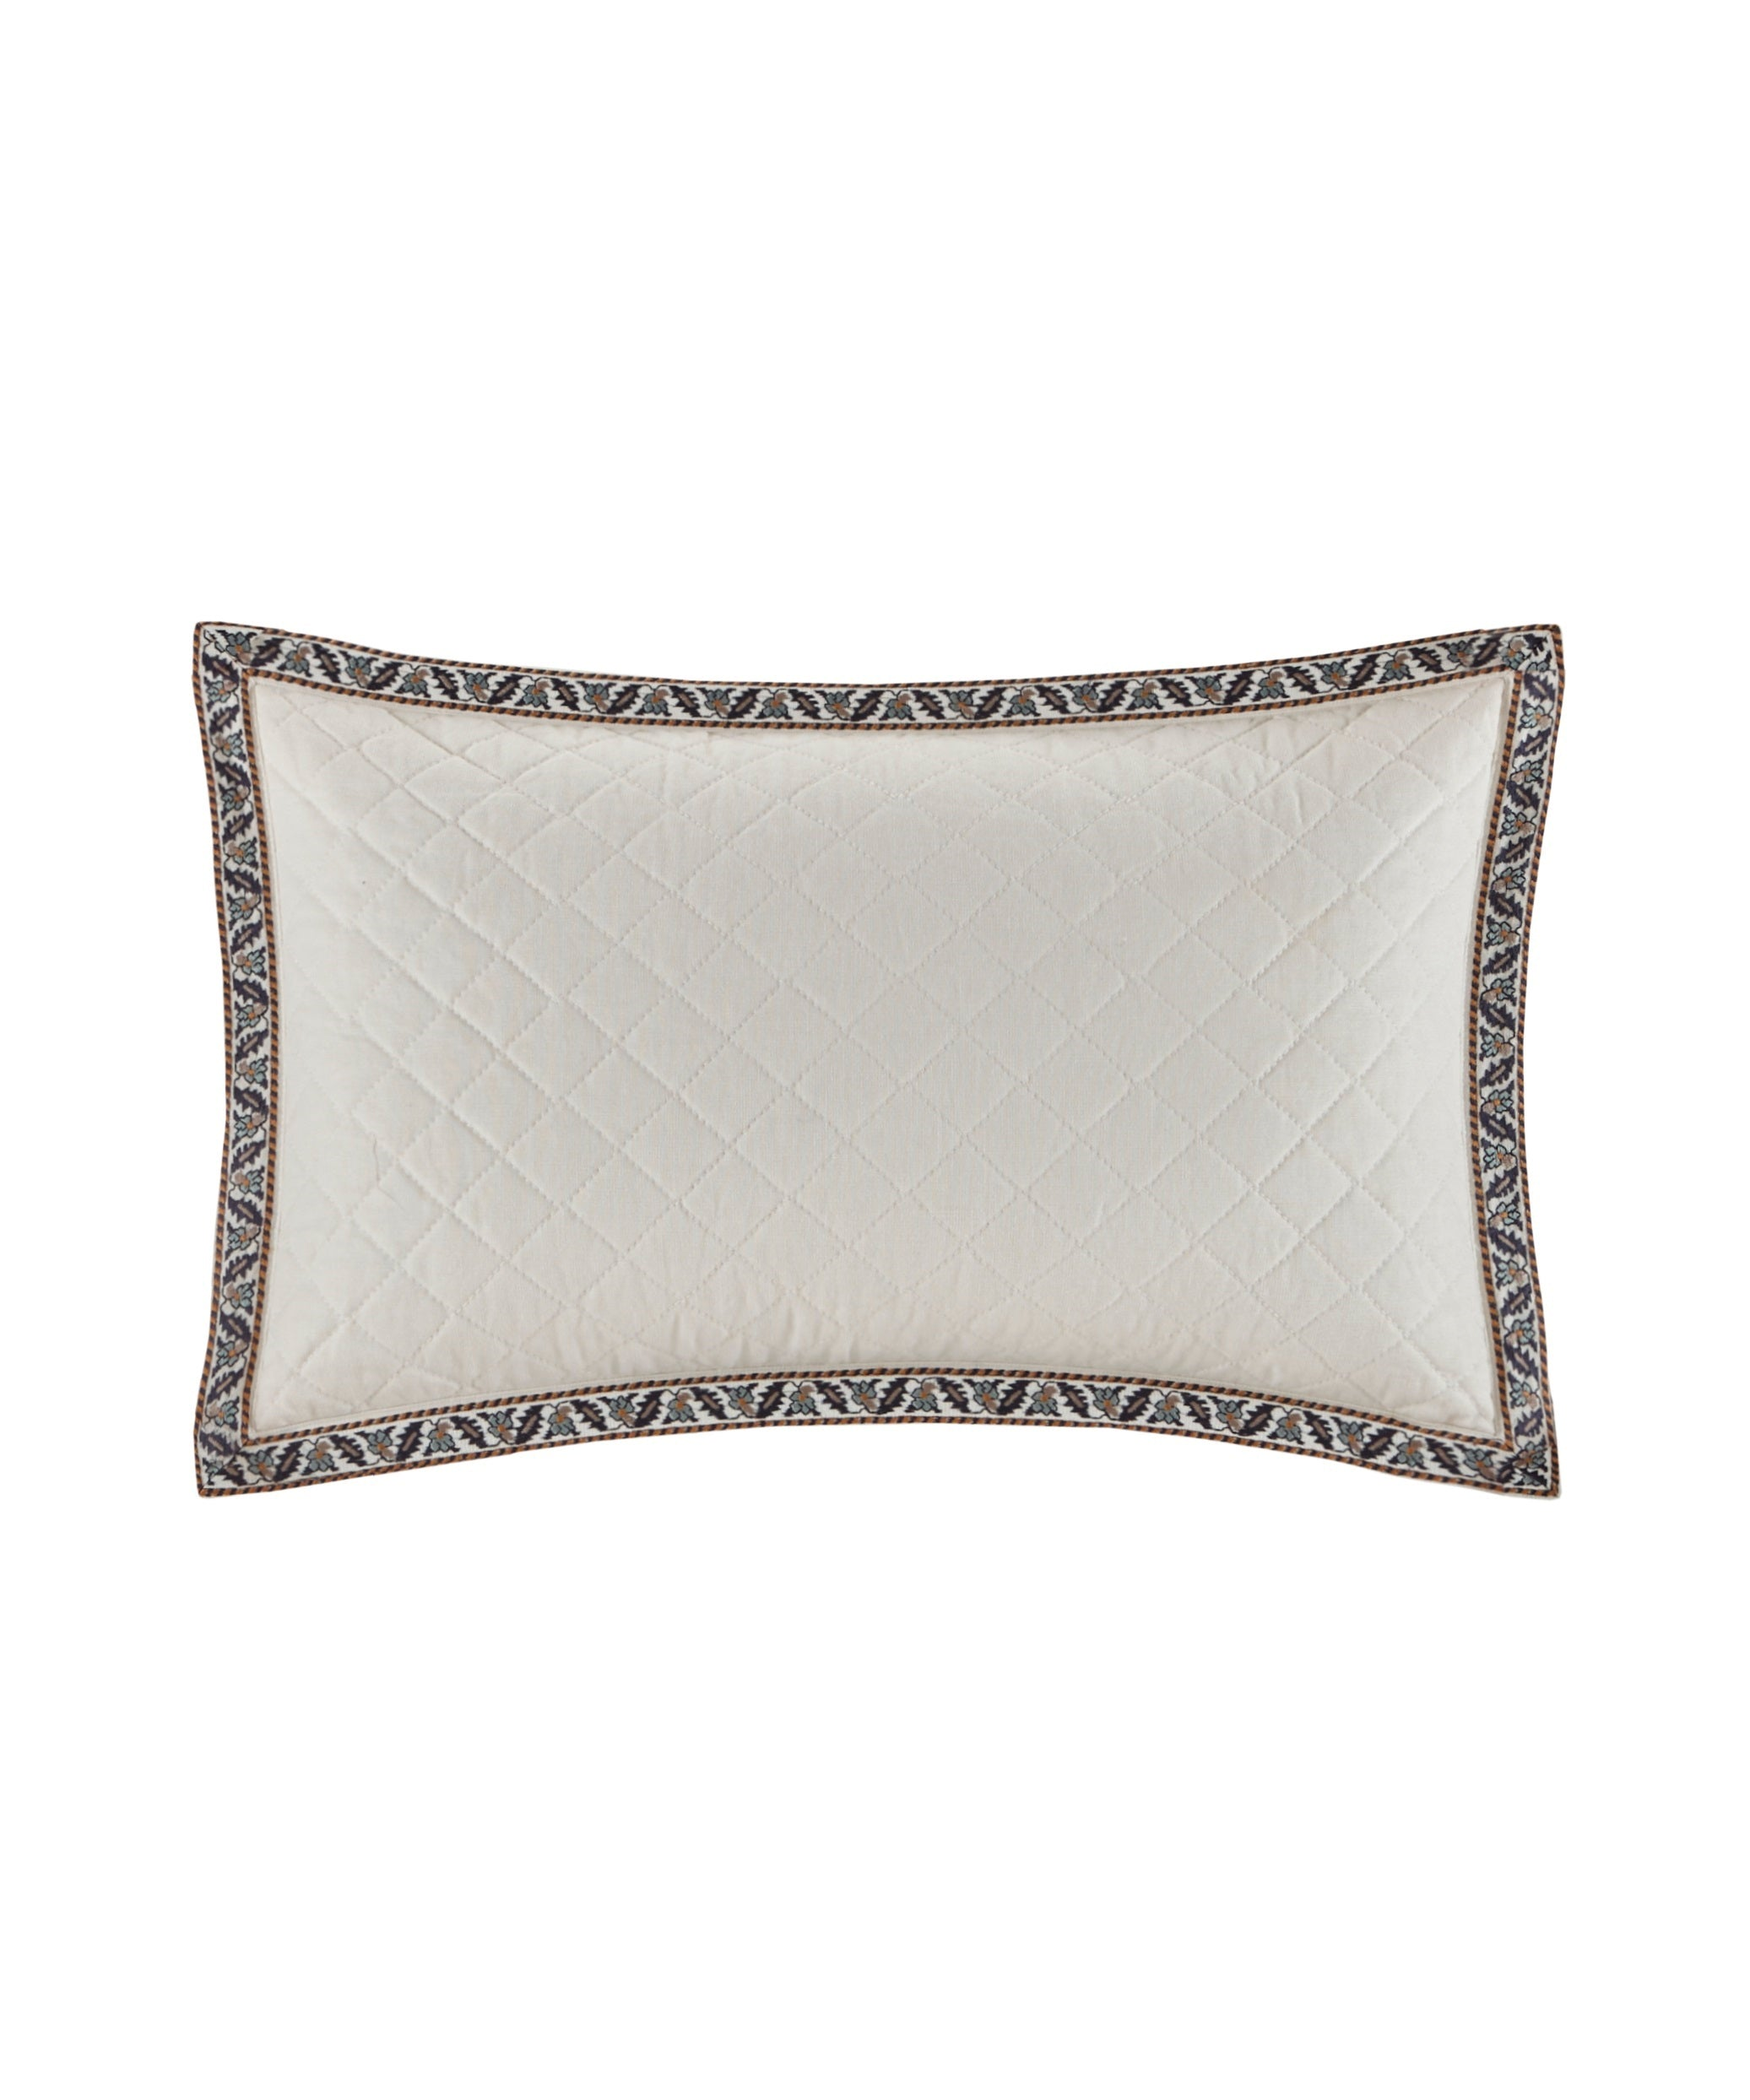 Cream - Paisley Shawl Oblong Pillow